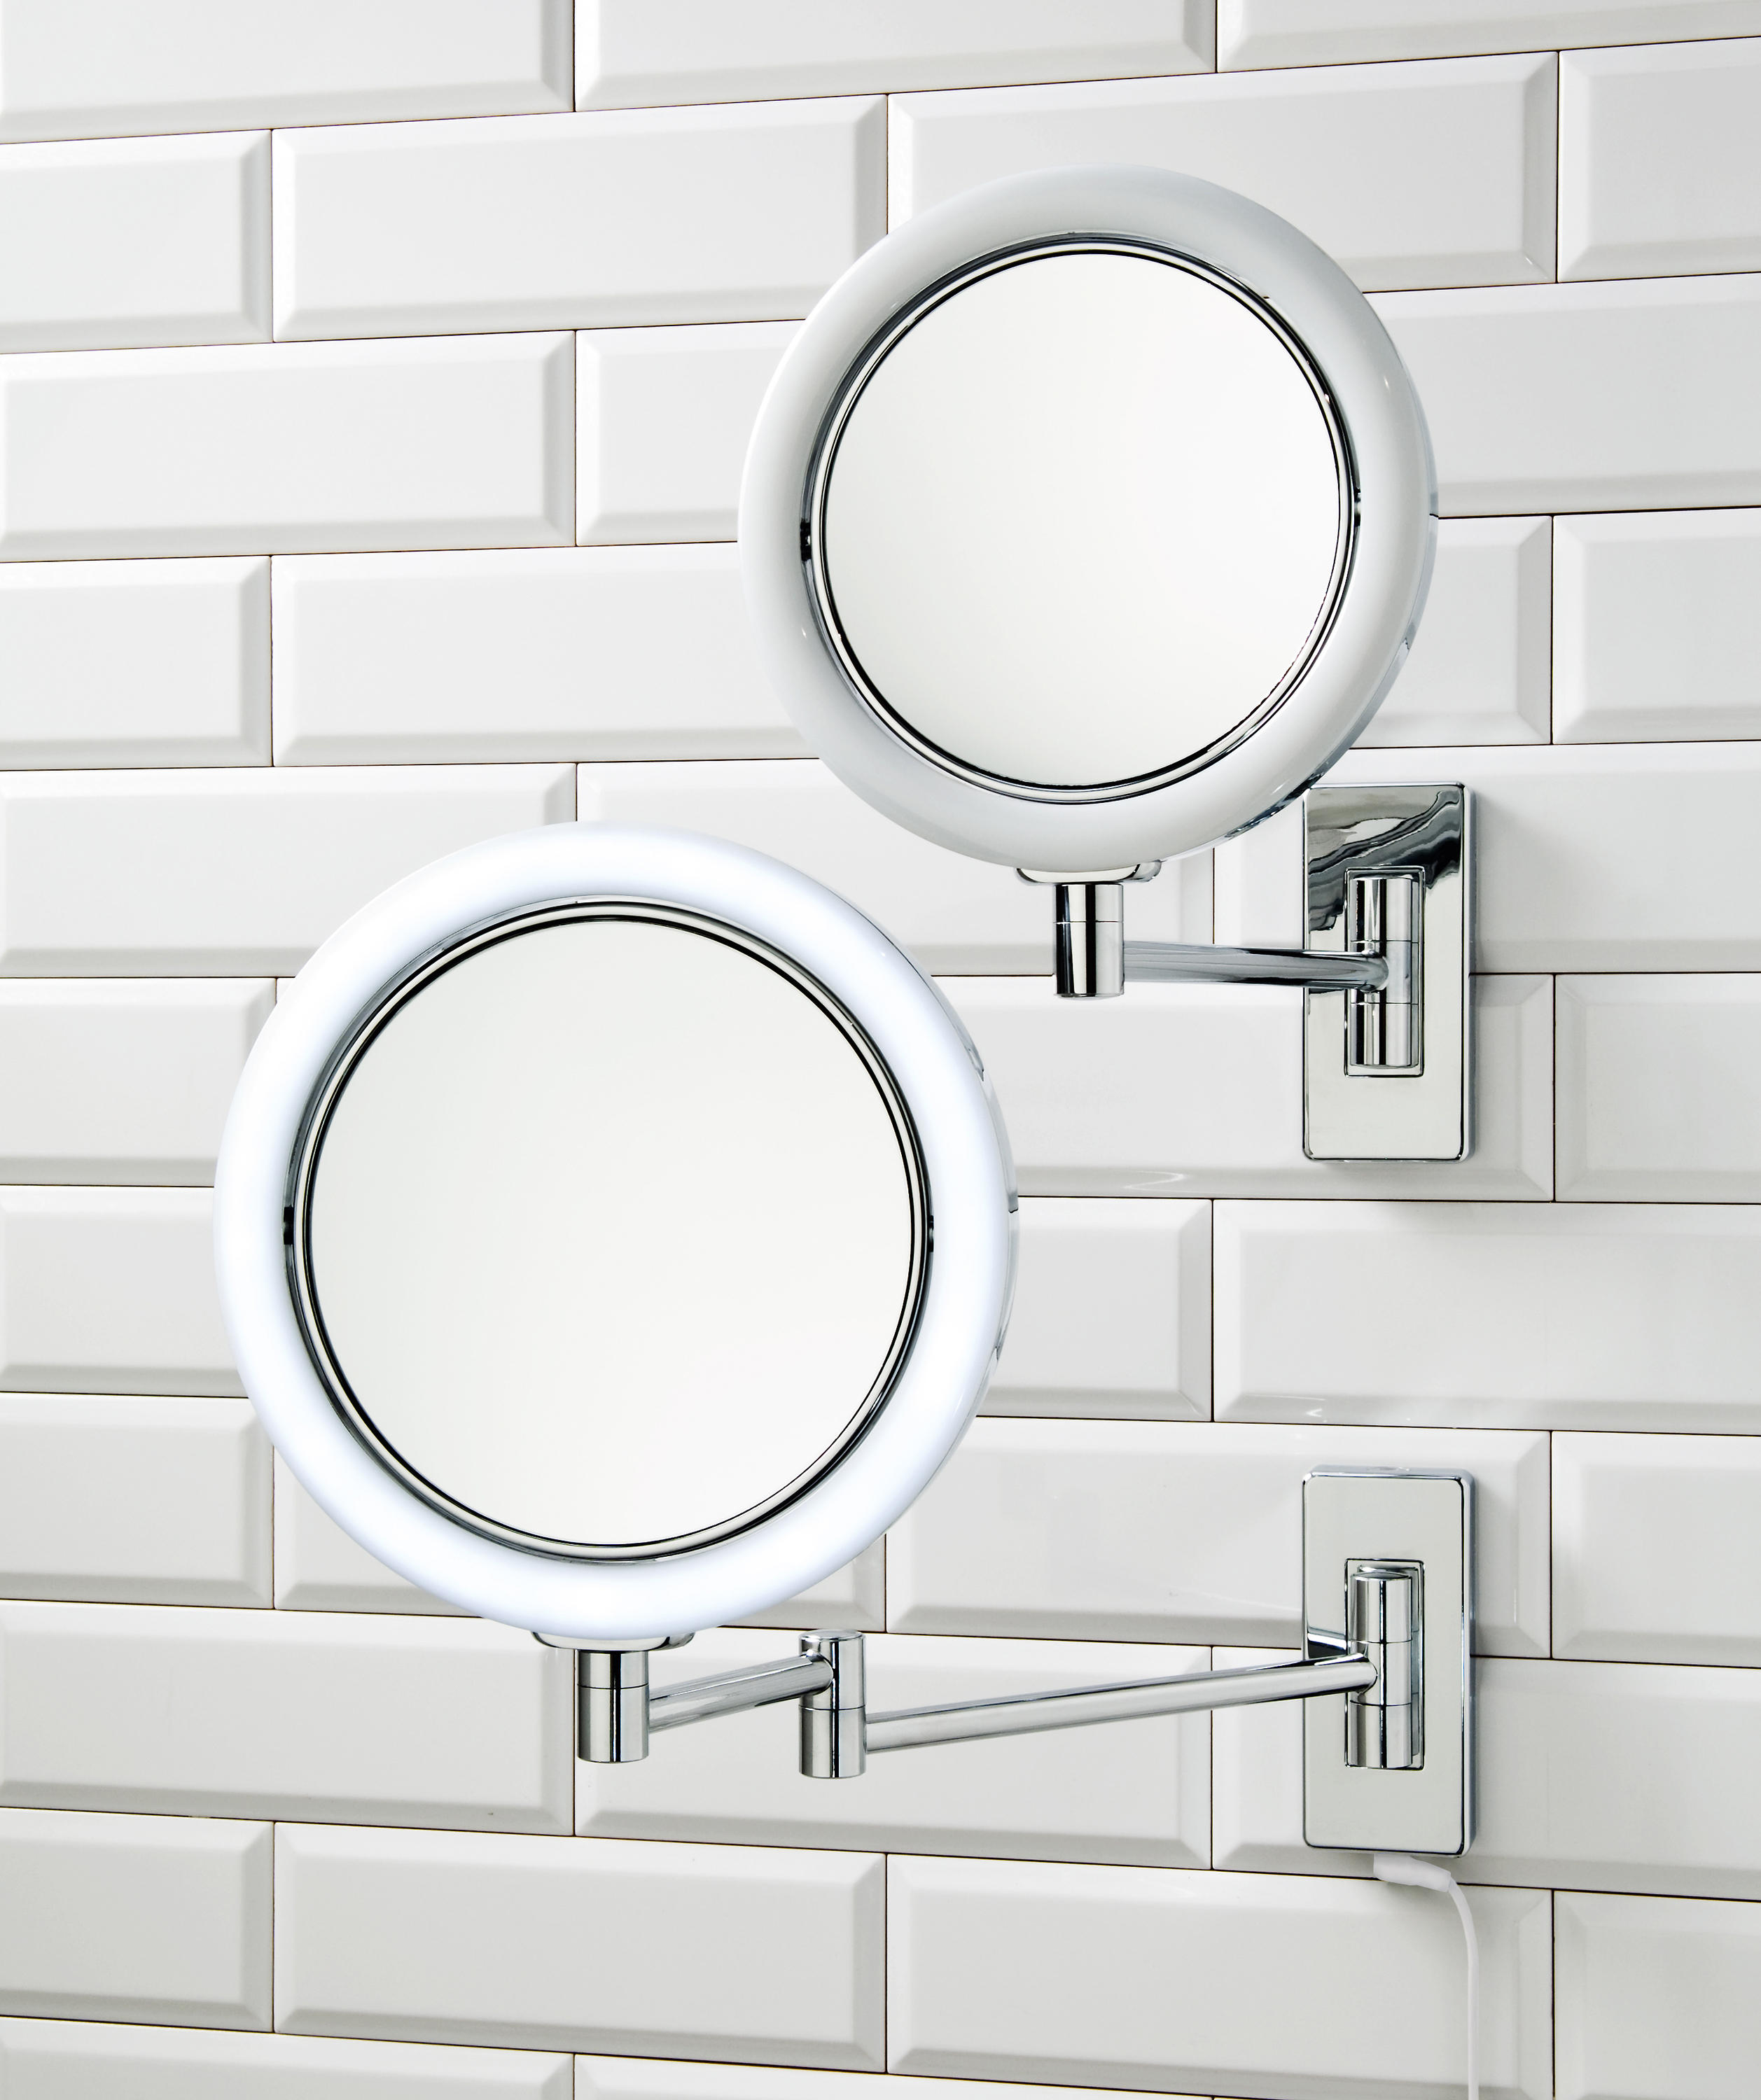 bs 25 pl shaving mirrors from decor walther architonic. Black Bedroom Furniture Sets. Home Design Ideas